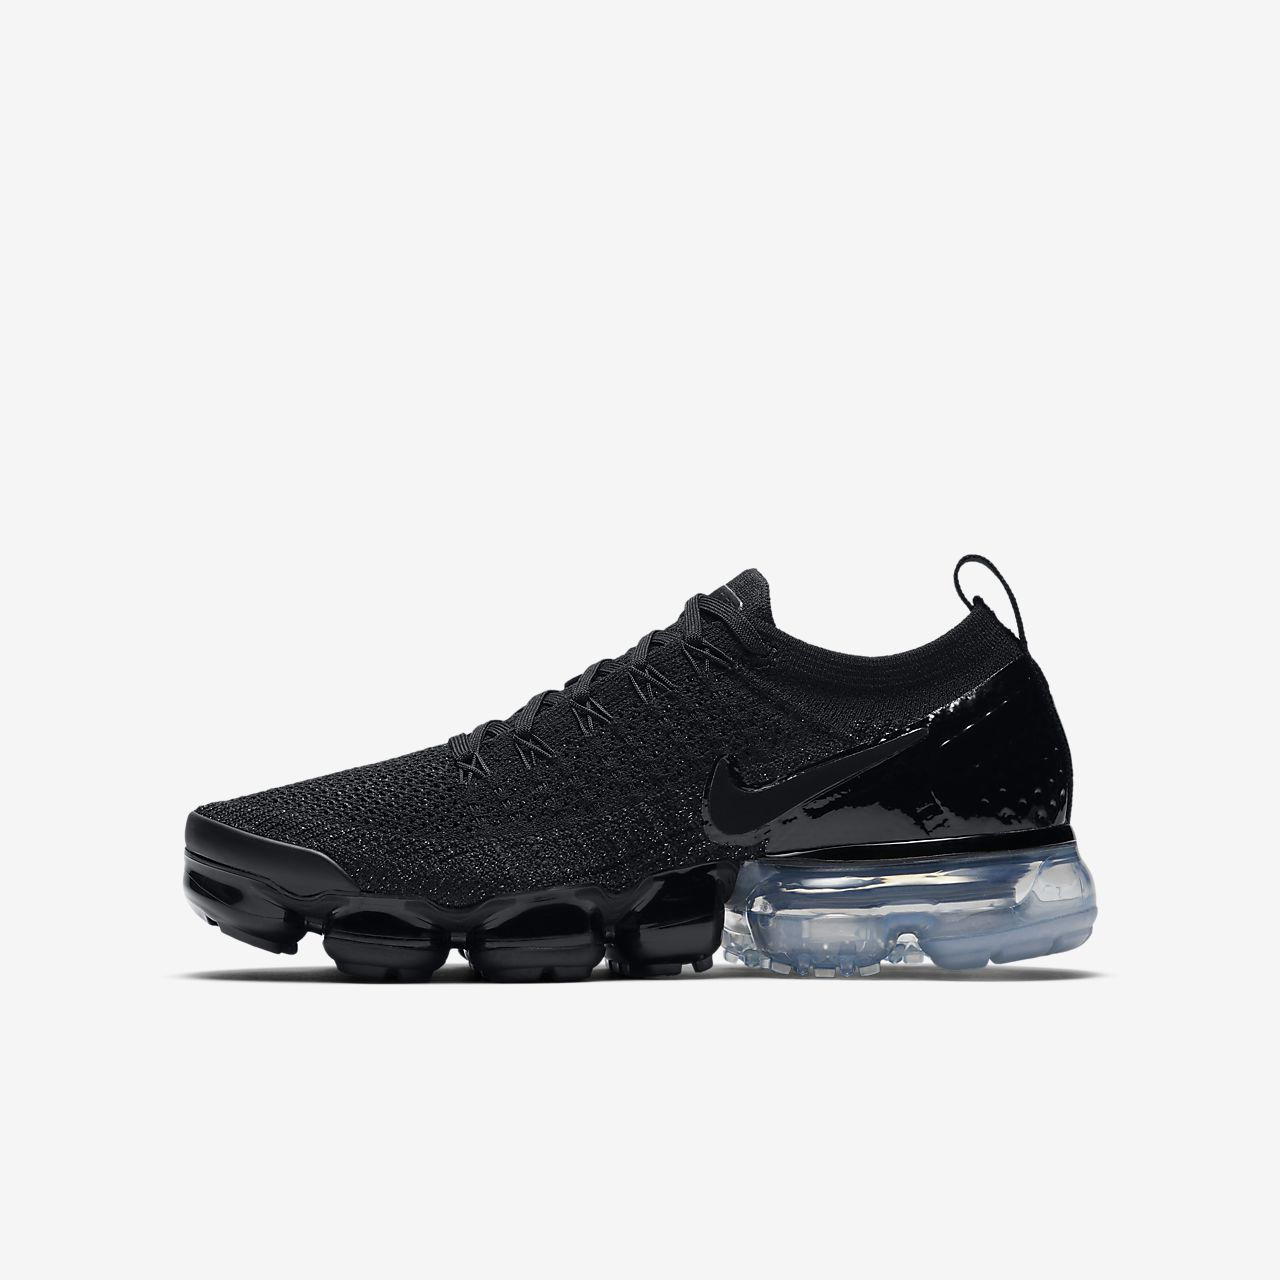 8b62990473a Nike Air VaporMax Flyknit 2 Women's Shoe